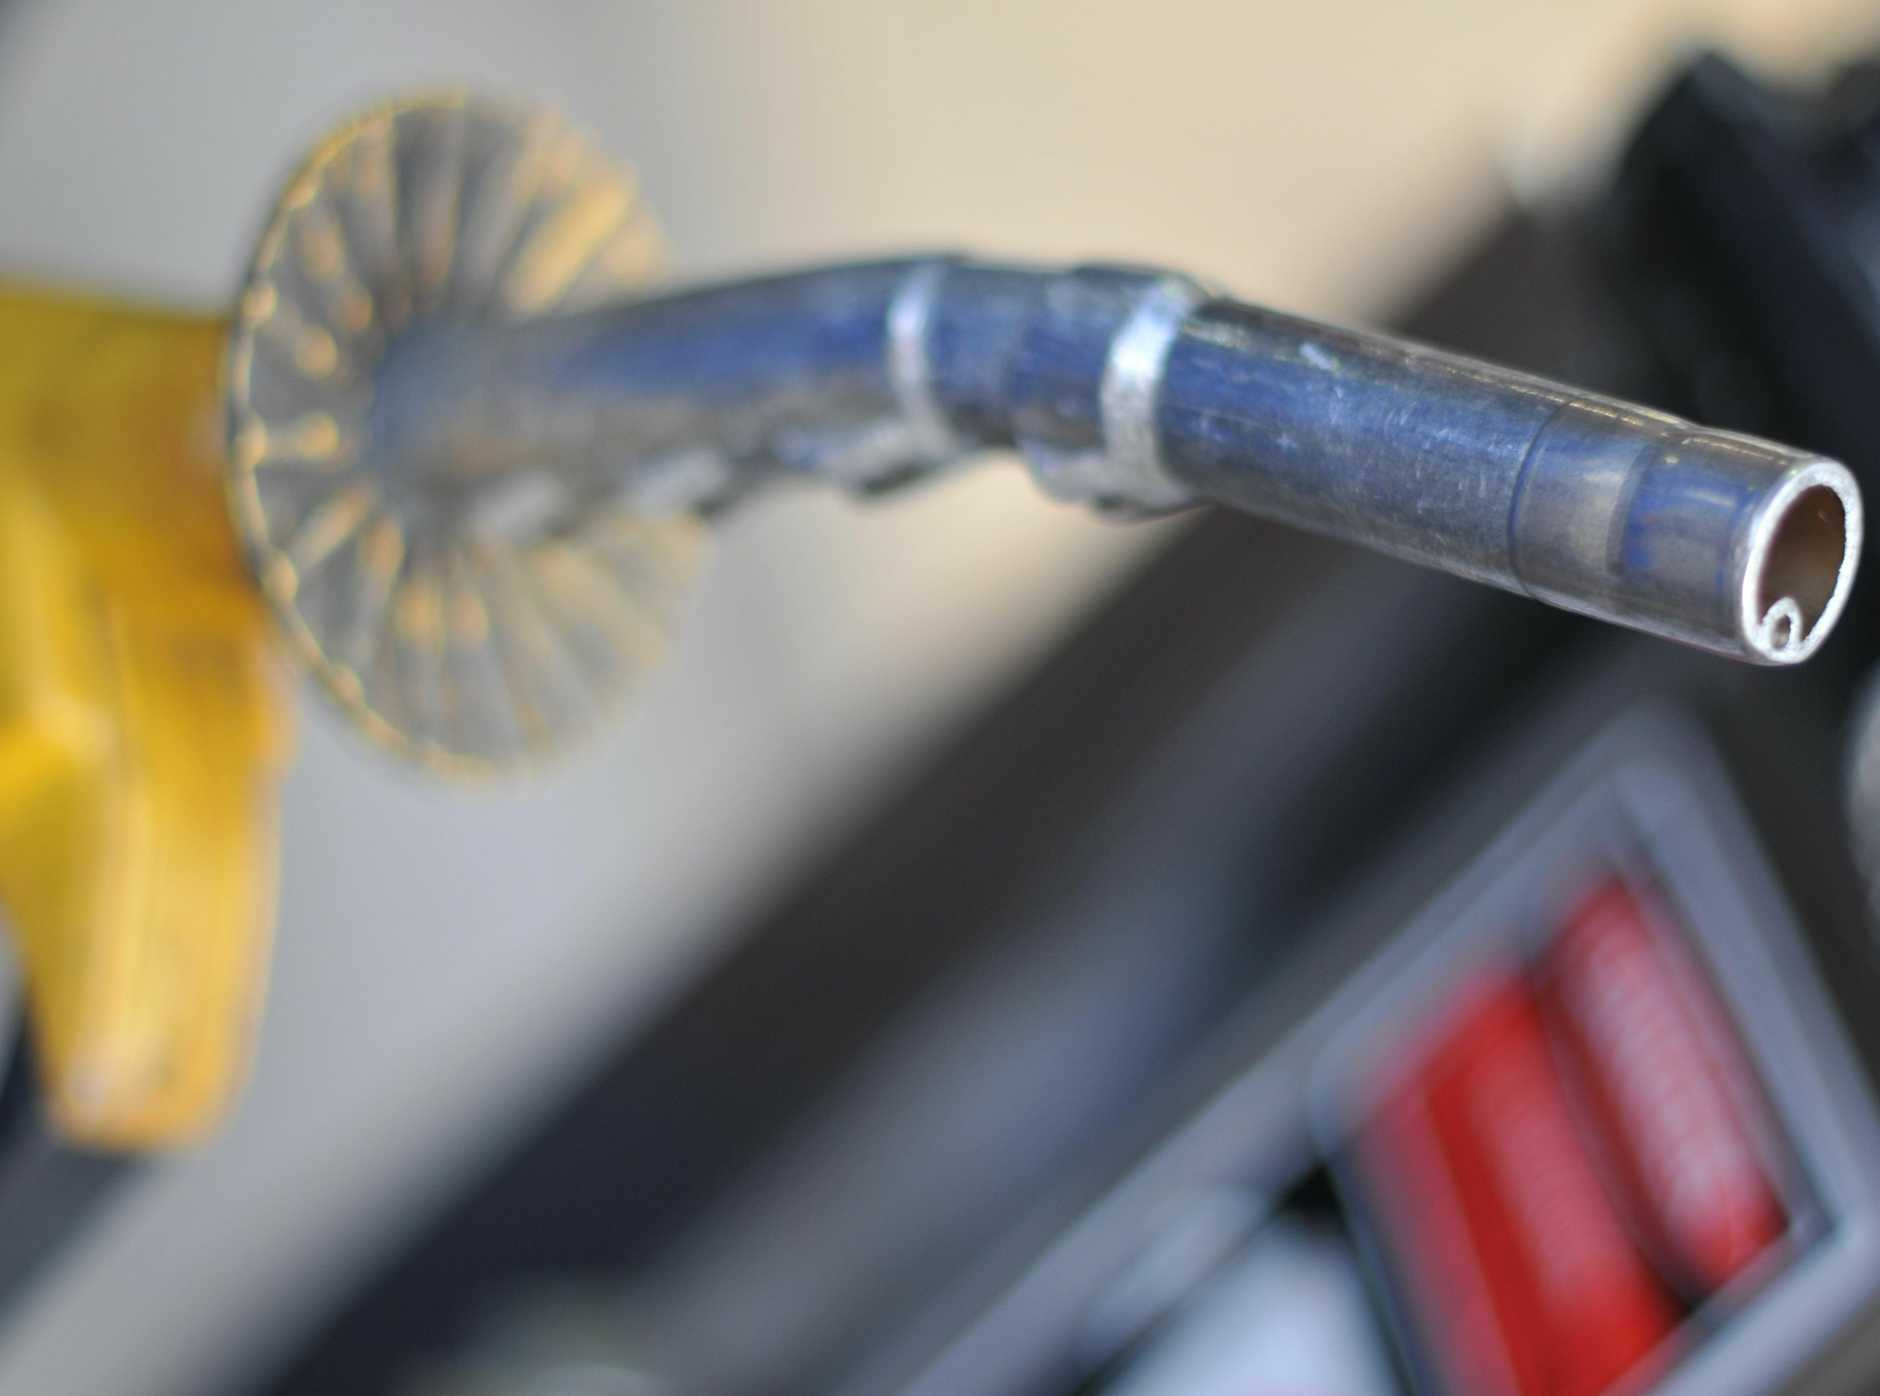 A man was fined after a string of offences, which included two petrol drive-offs.